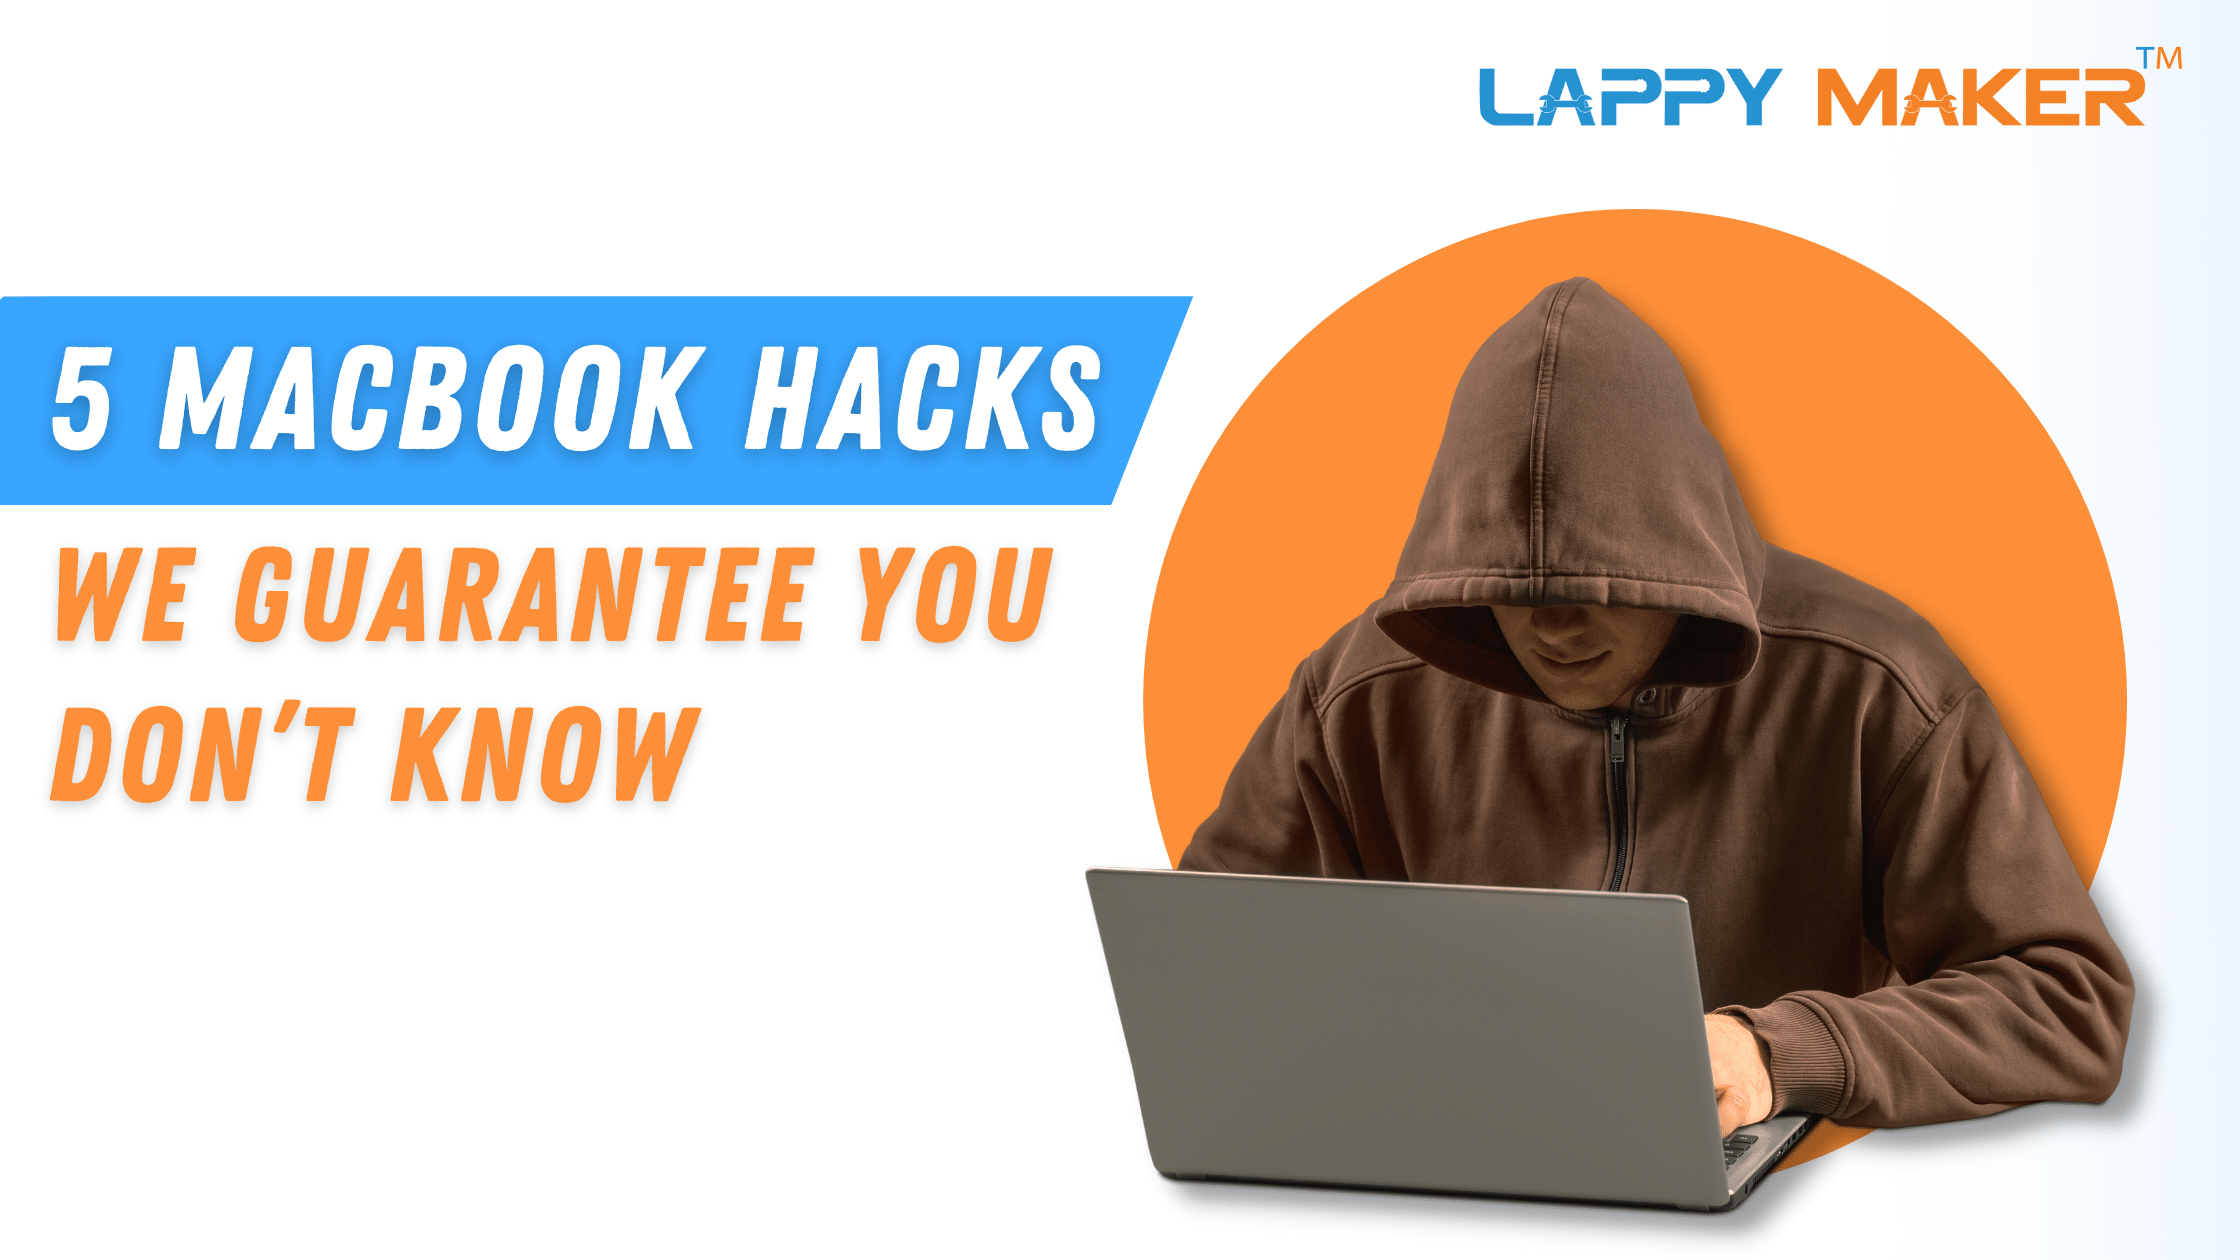 5 MacBook Hacks We Guarantee You don't Know – Lappy Maker